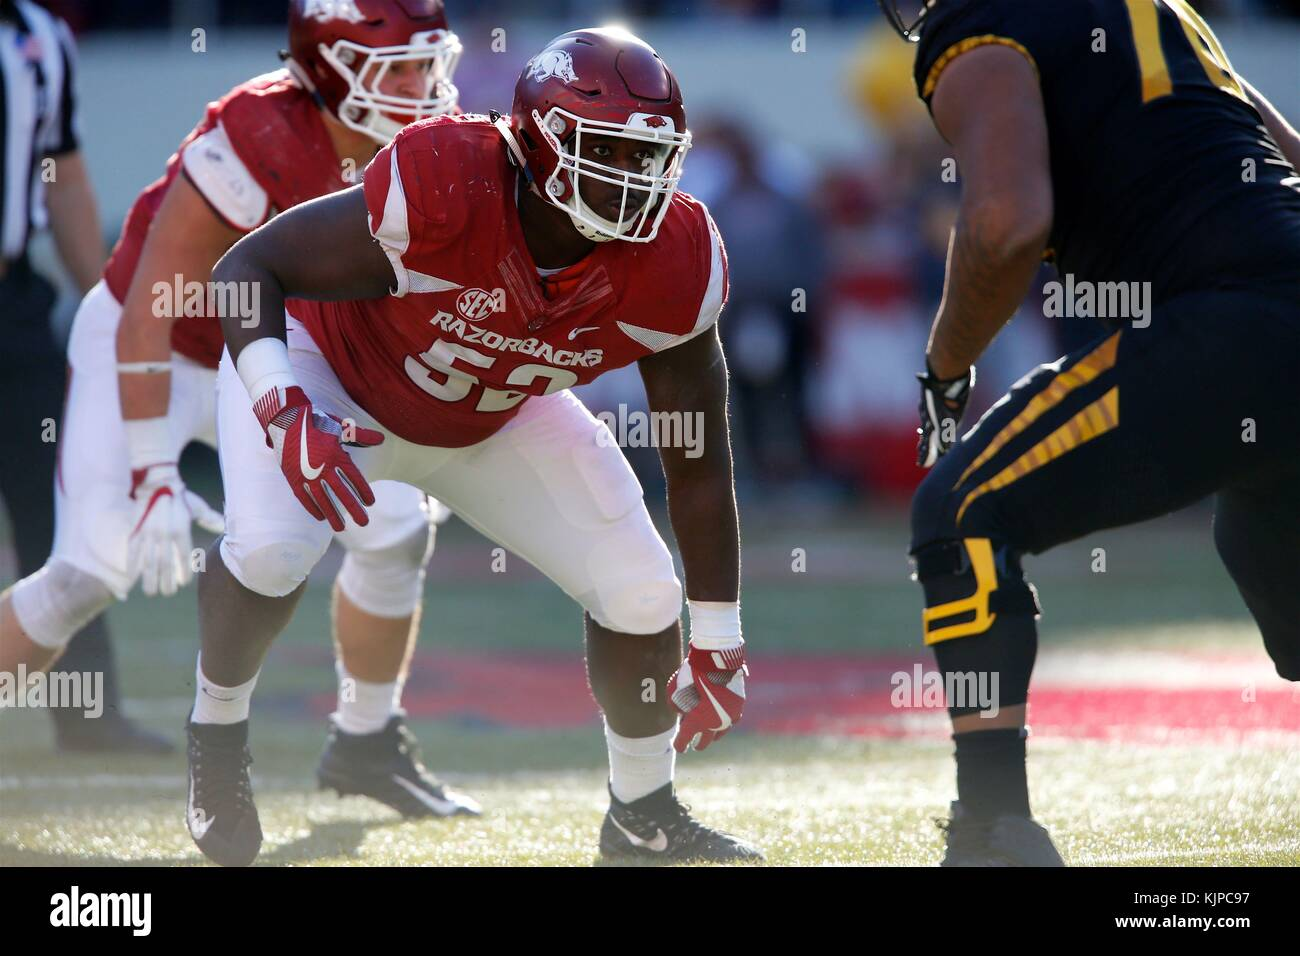 Nov 24, 2017: T.J. Smith #52 Arkansas defensive end comes out of his stance up the field. The Missouri Tigers defeated - Stock Image